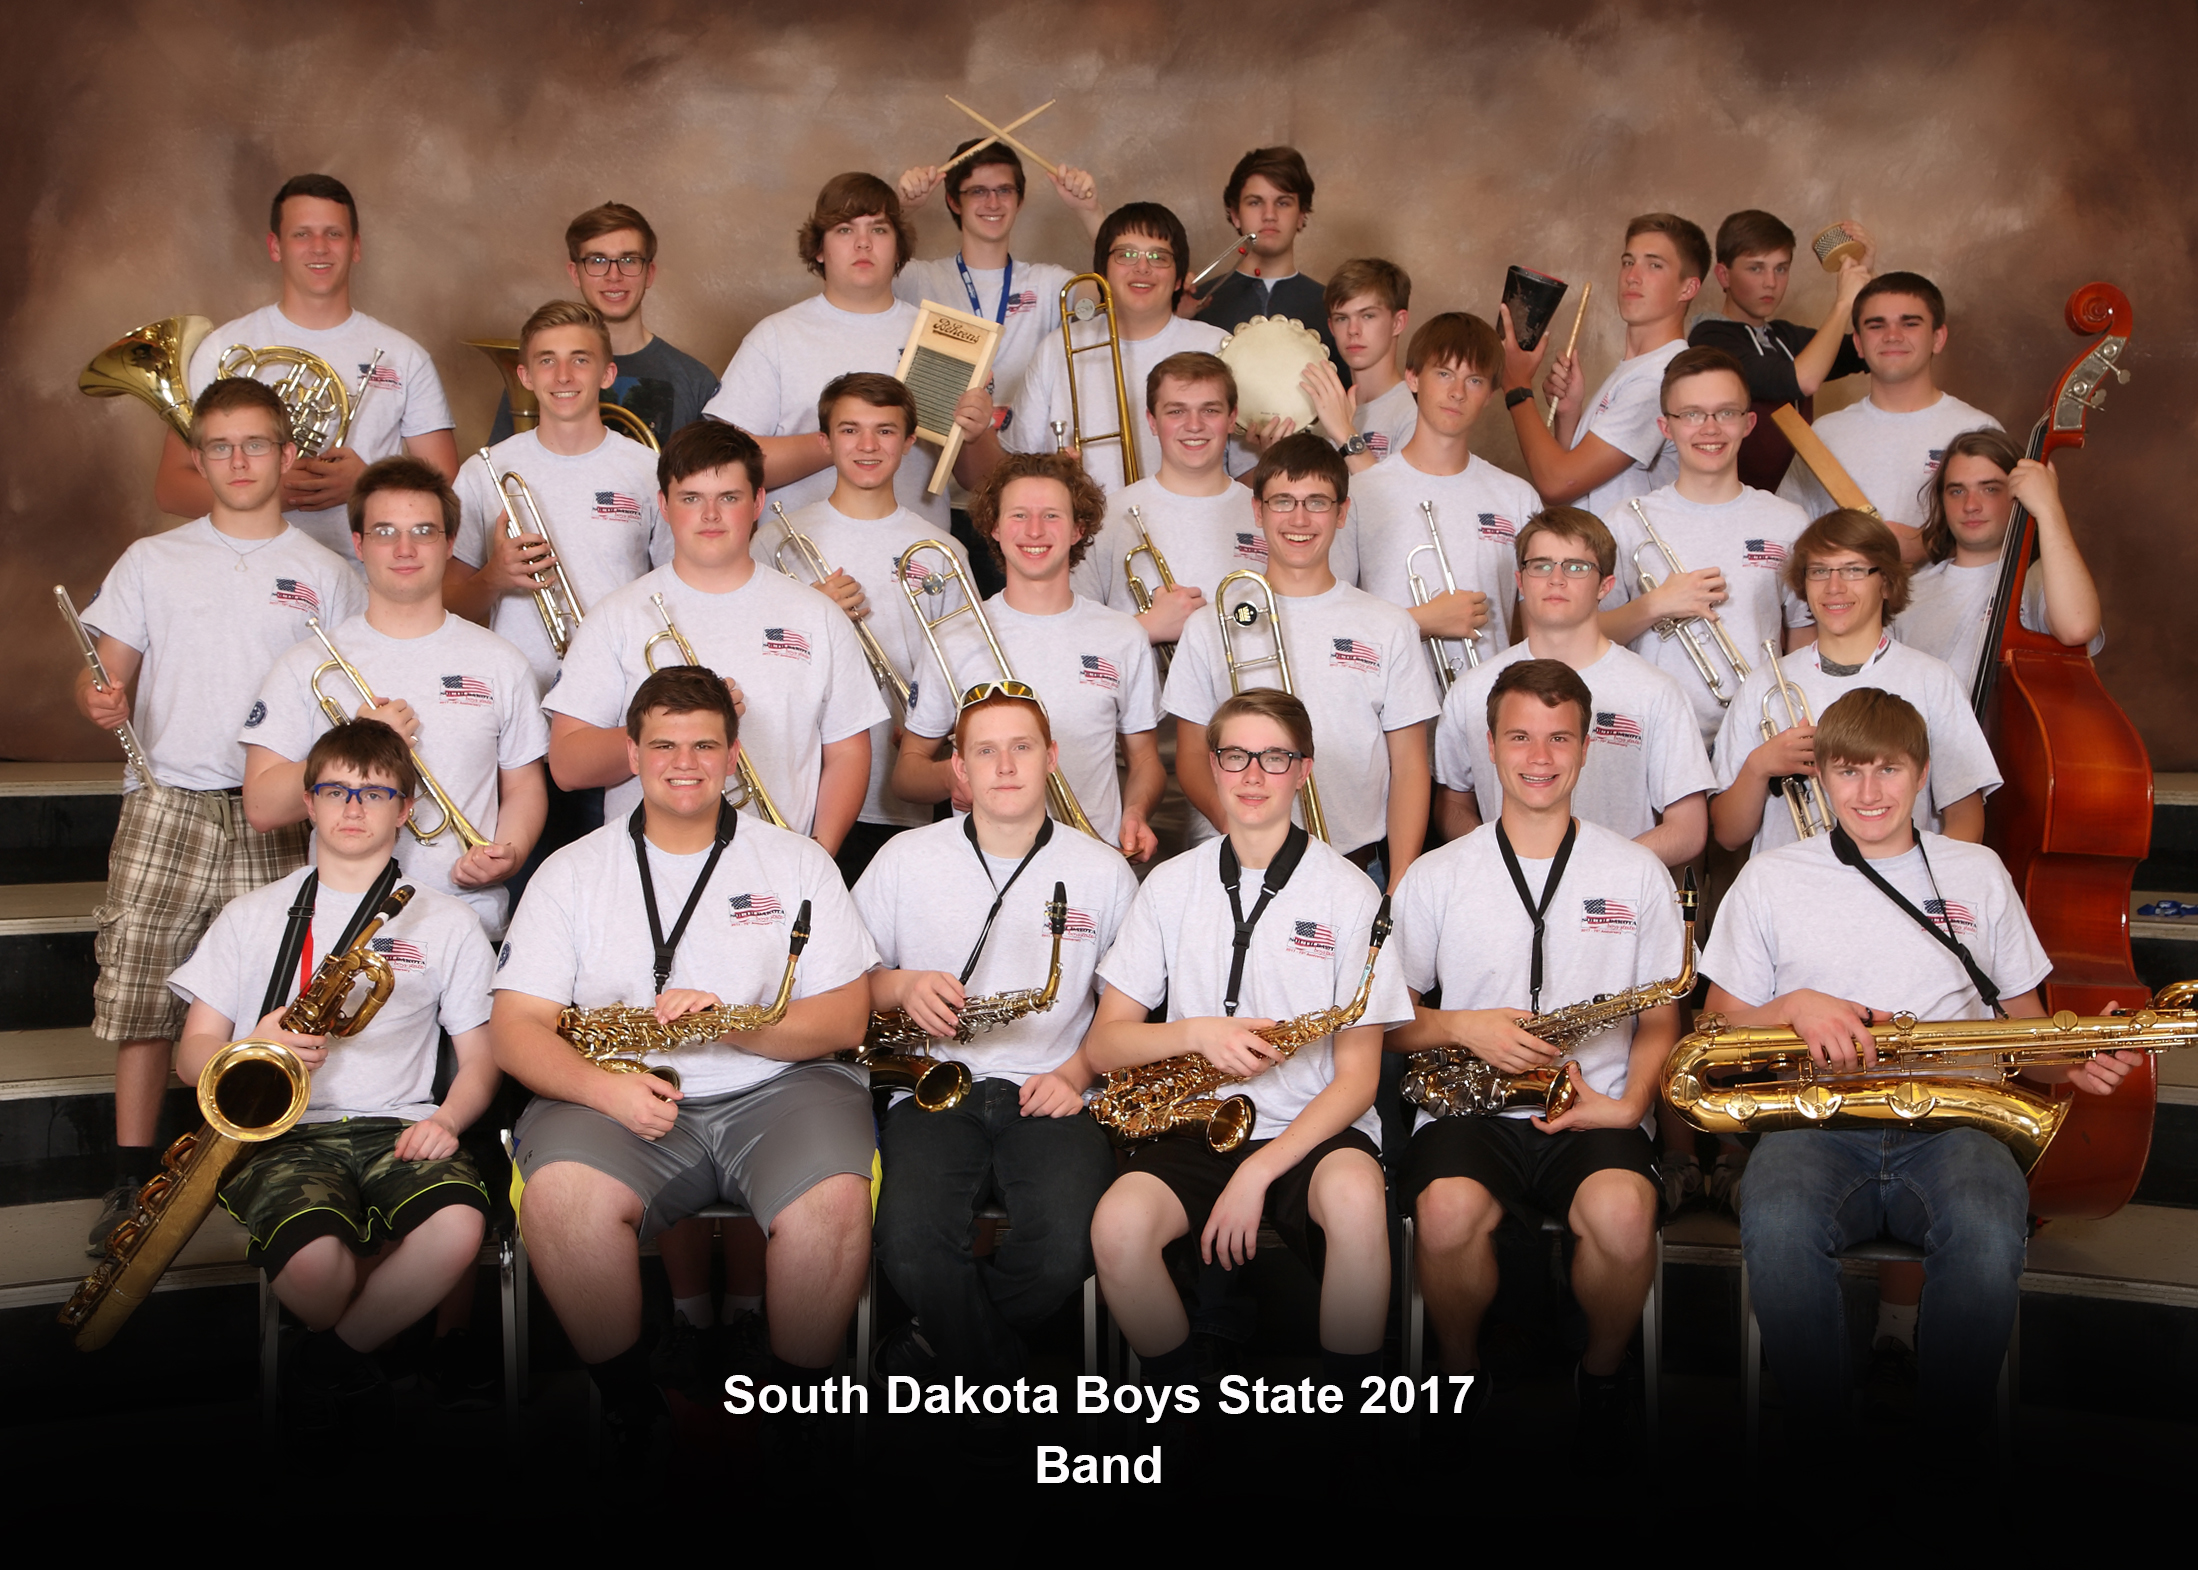 South Dakota Boys State Band 2017